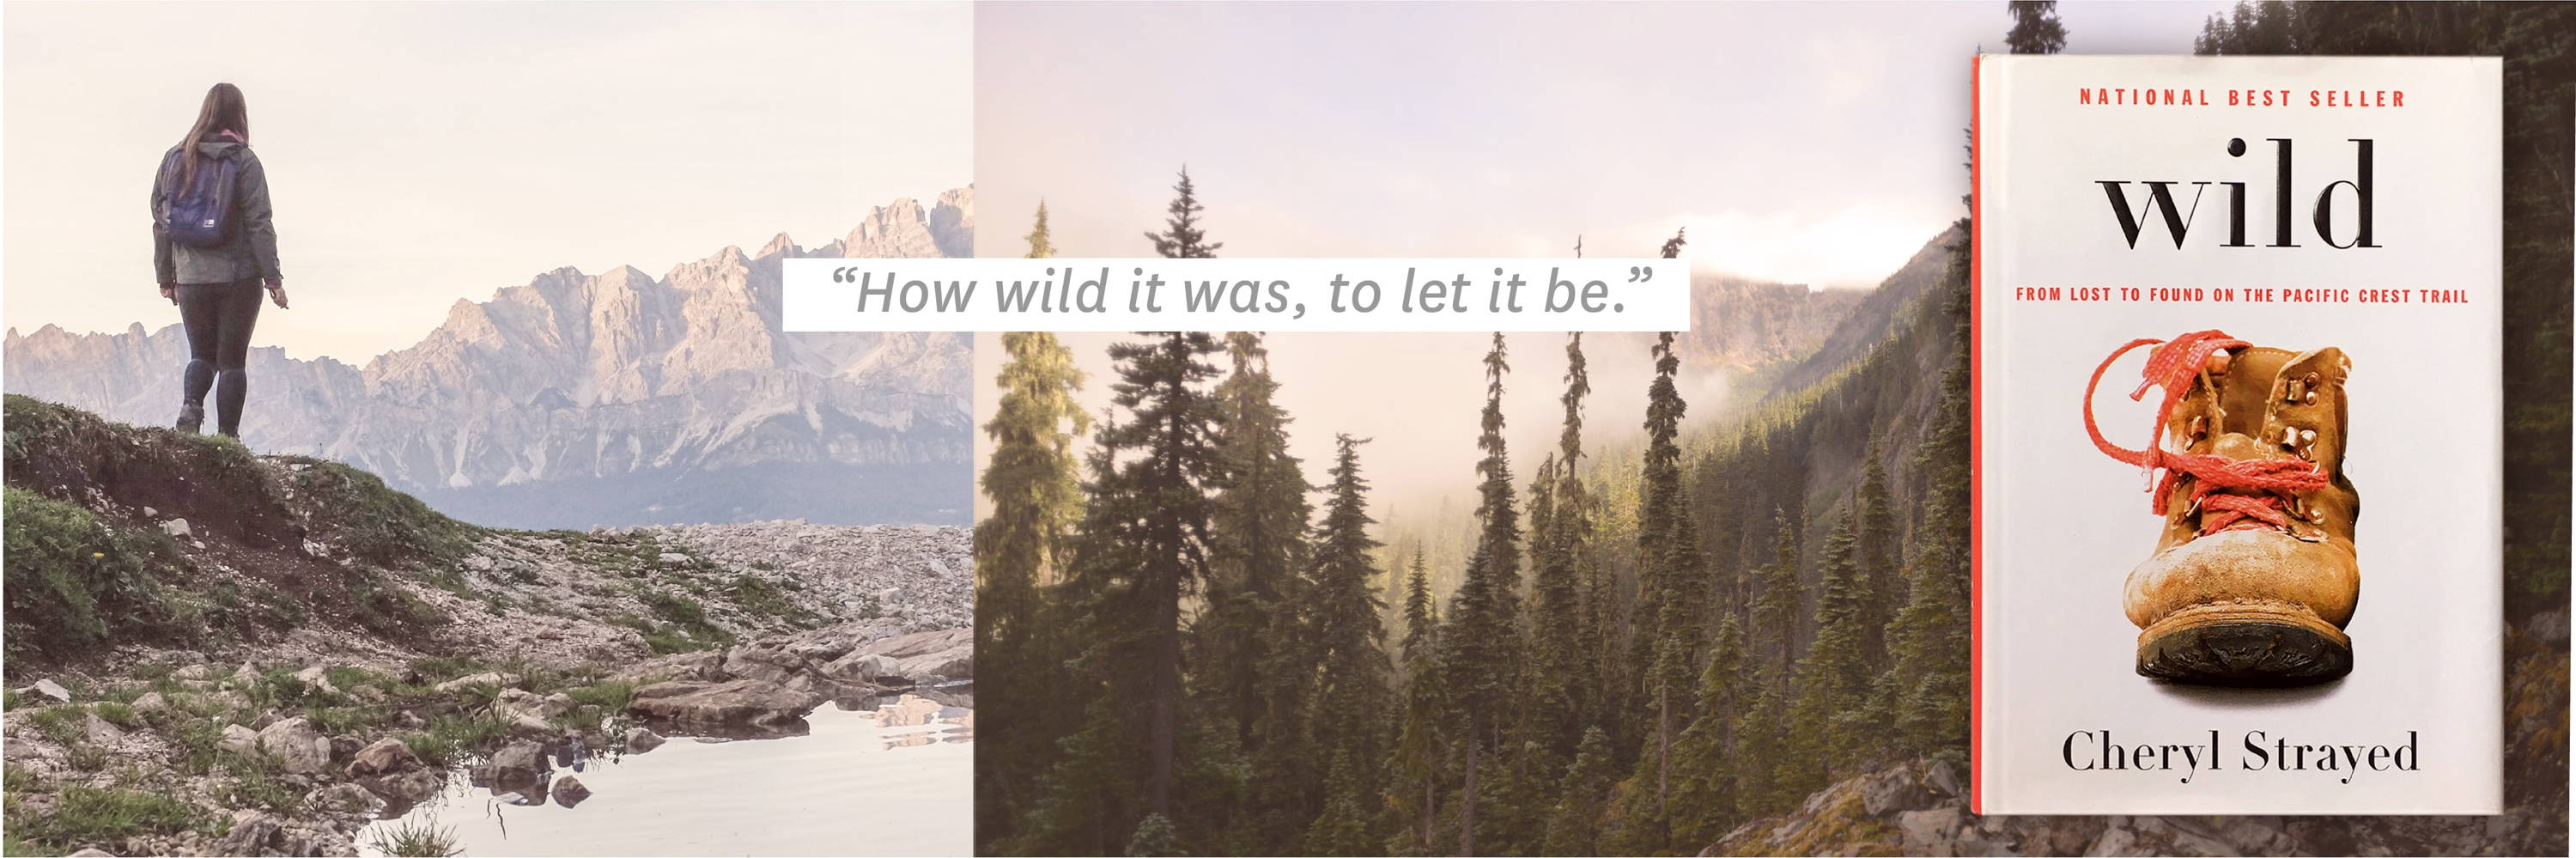 ''How wild it was, to let it be.''